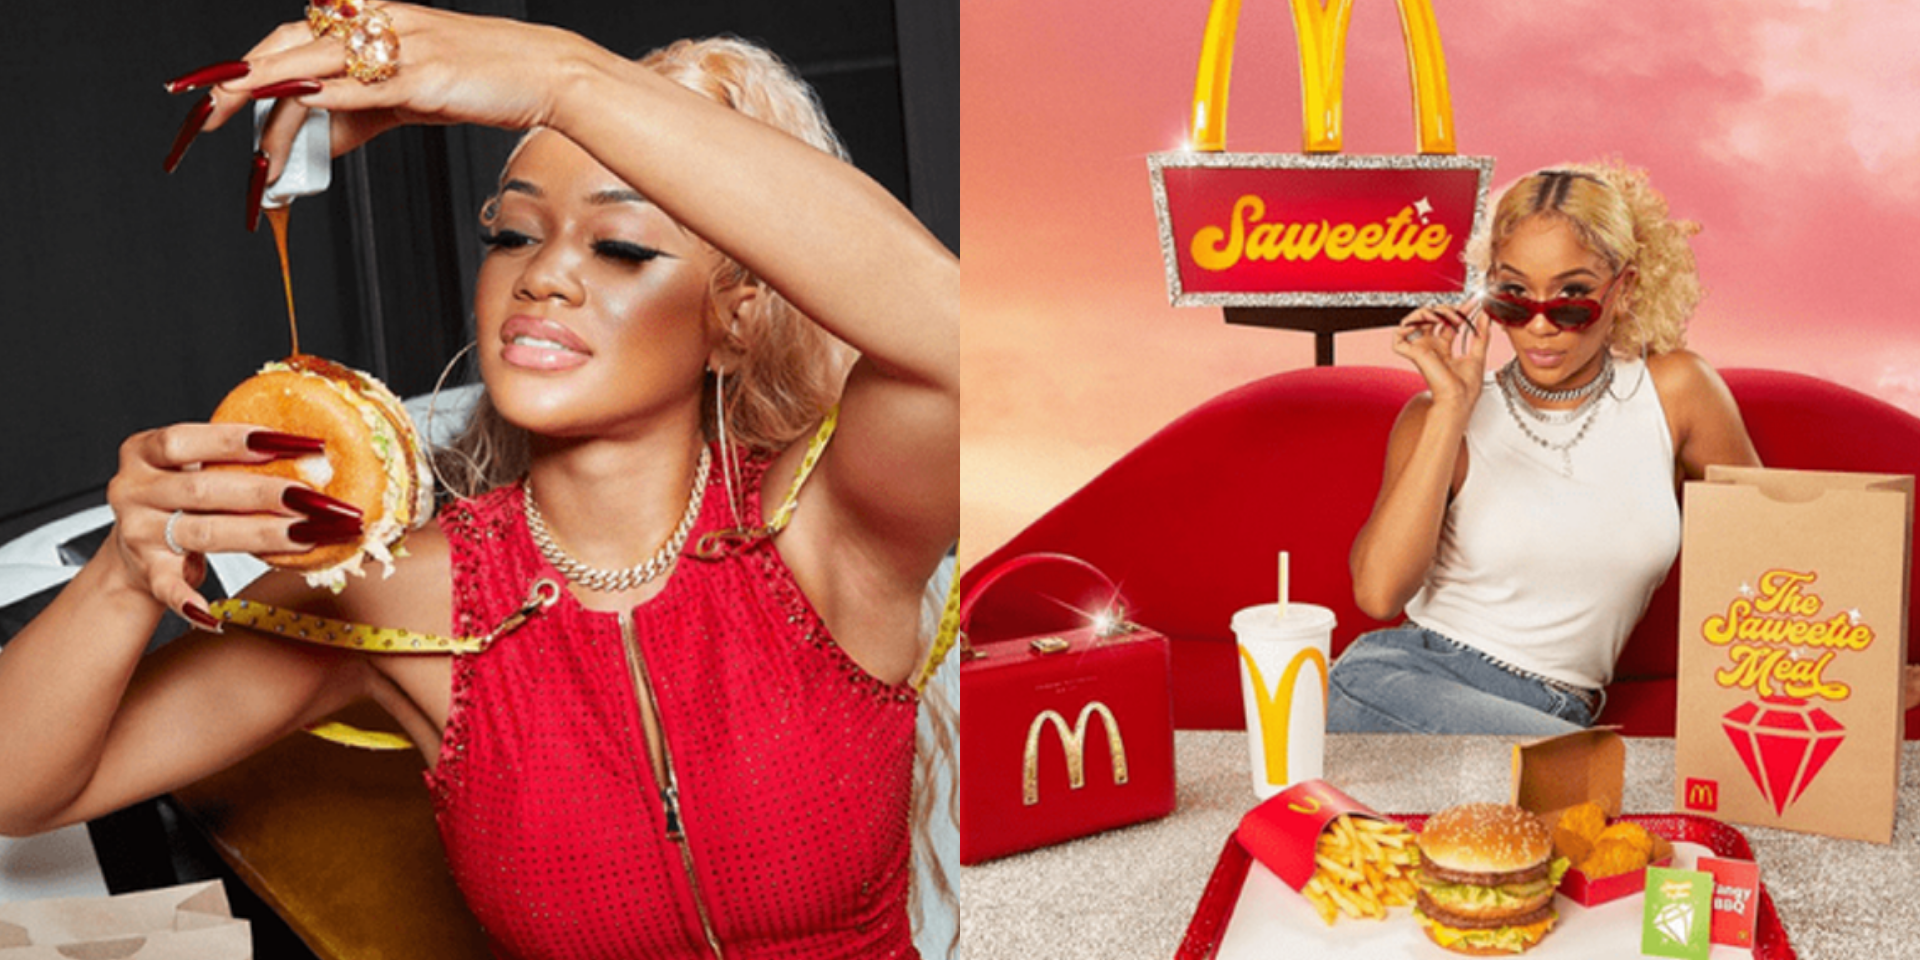 Saweetie to launch 'The Saweetie Meal' in the US